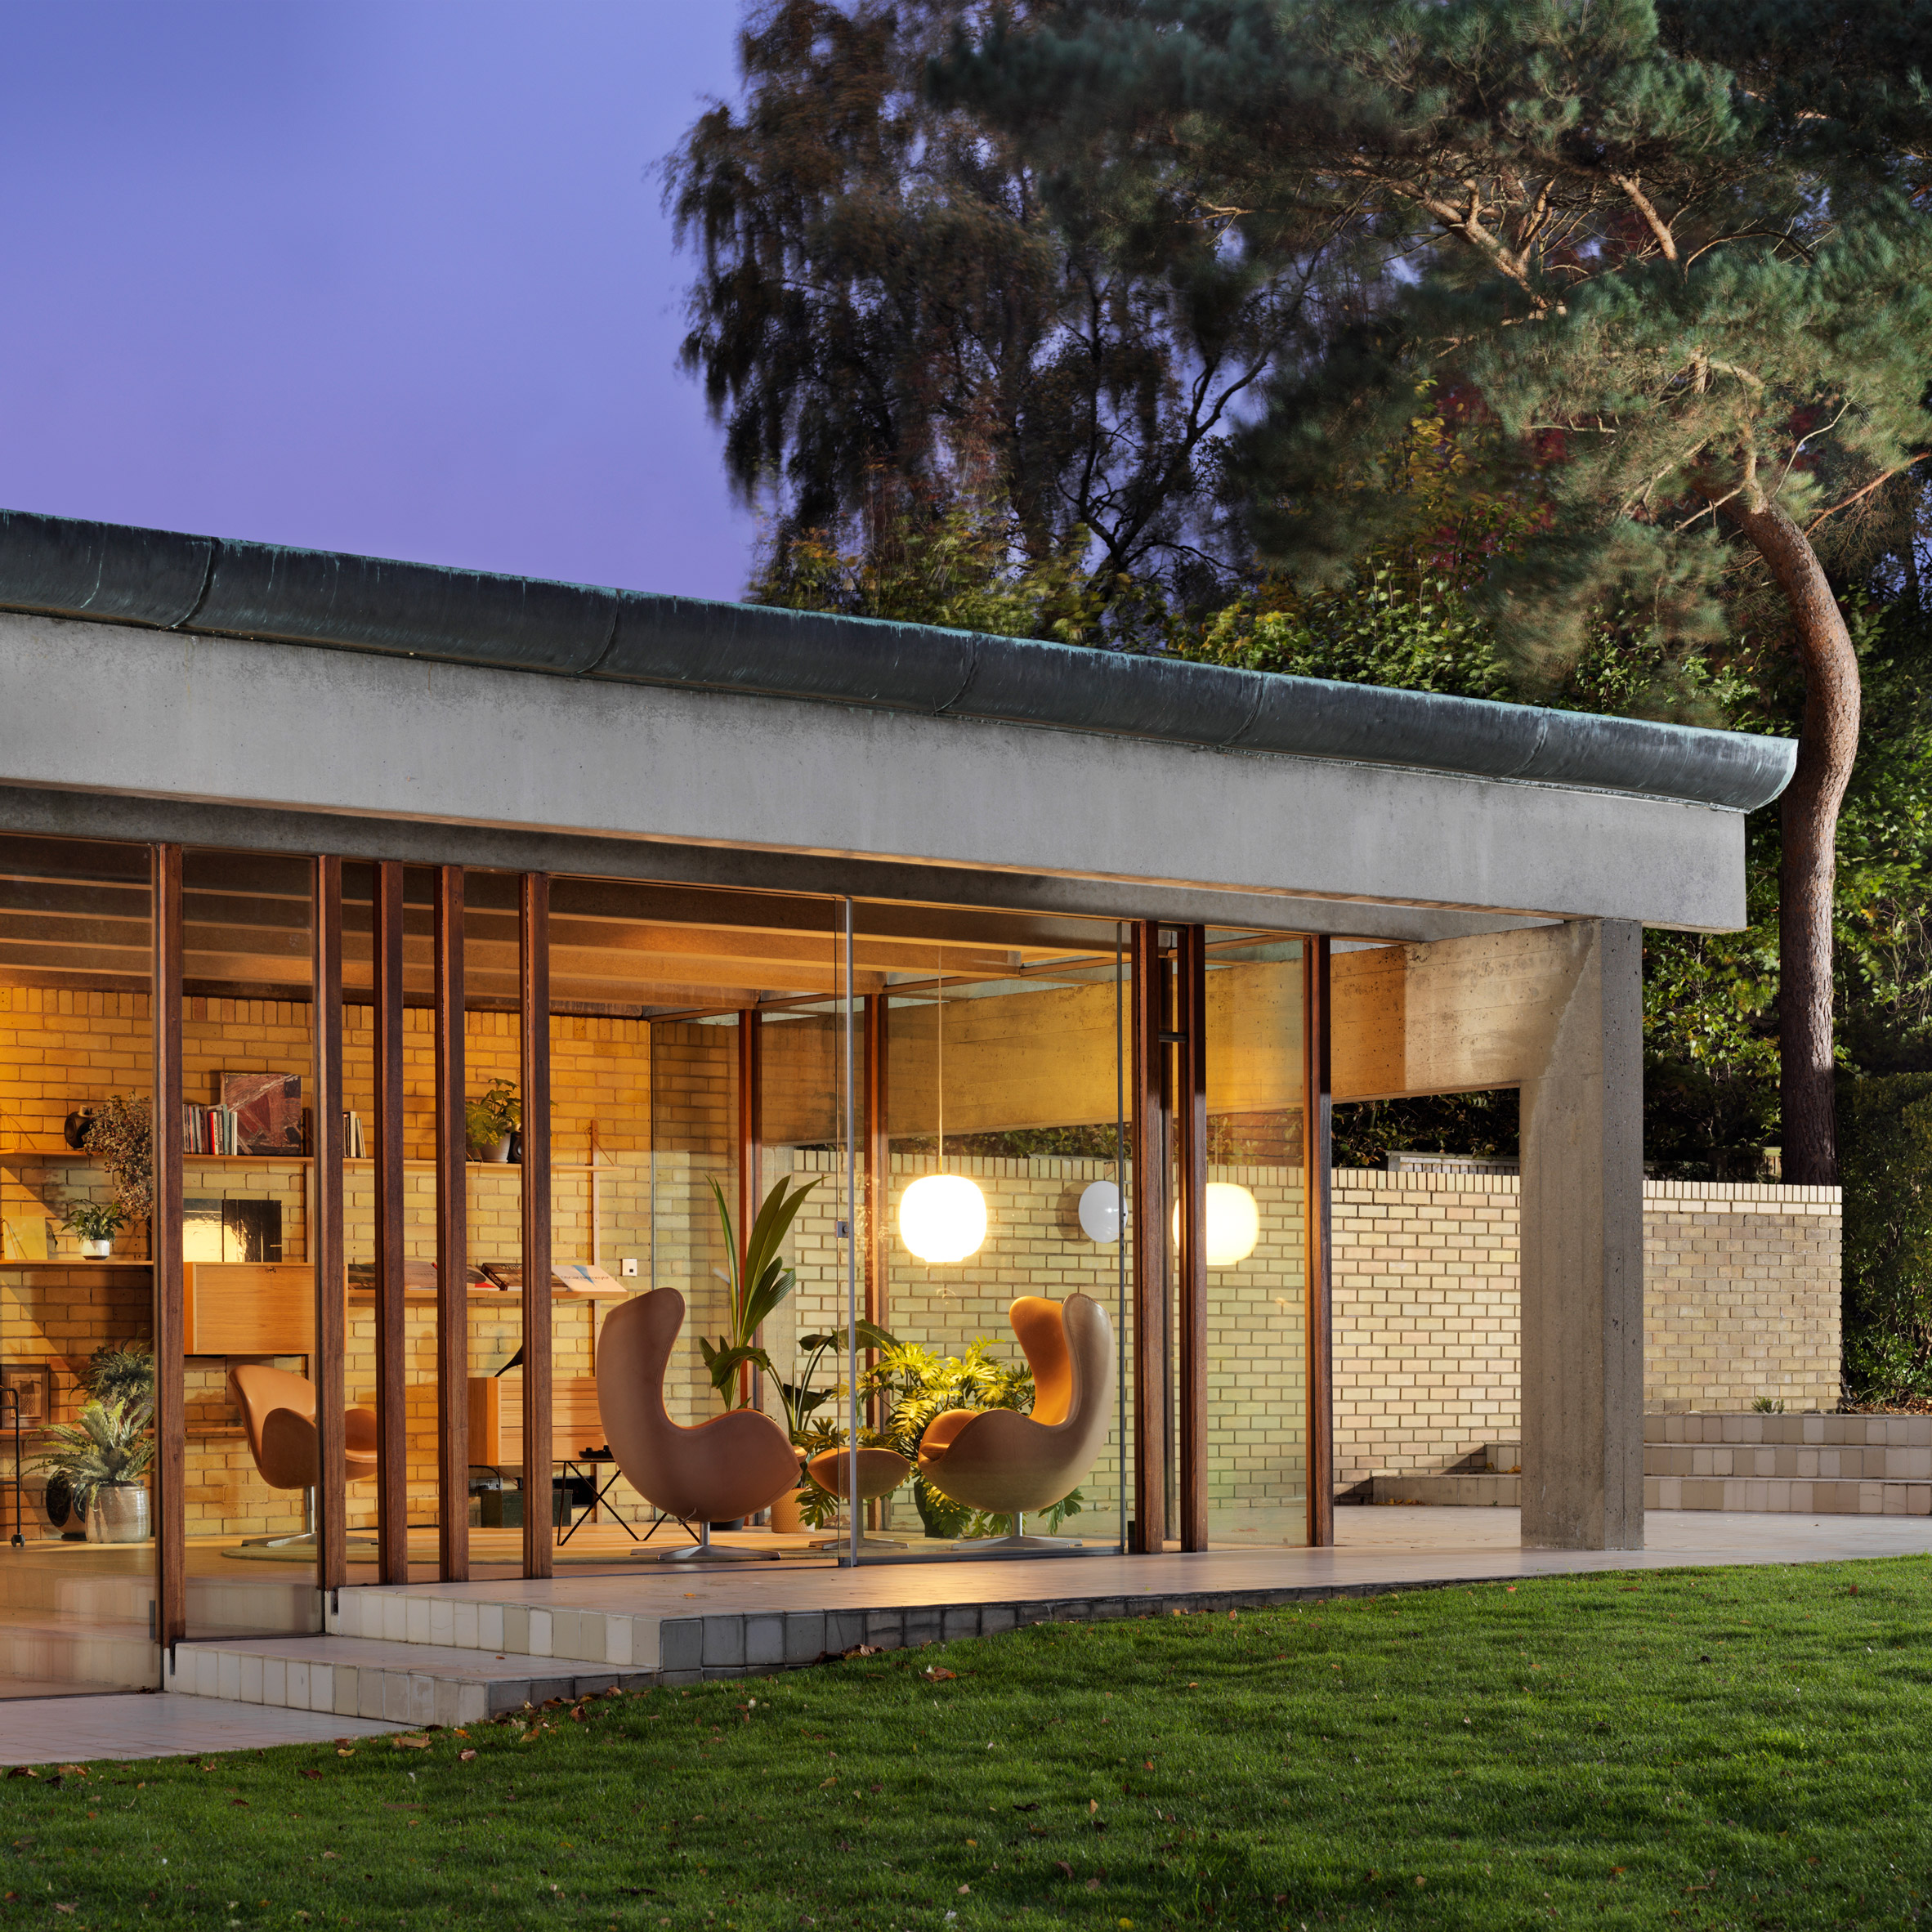 Ahm House by Jørn Utzon renovated by Coppin Dockray